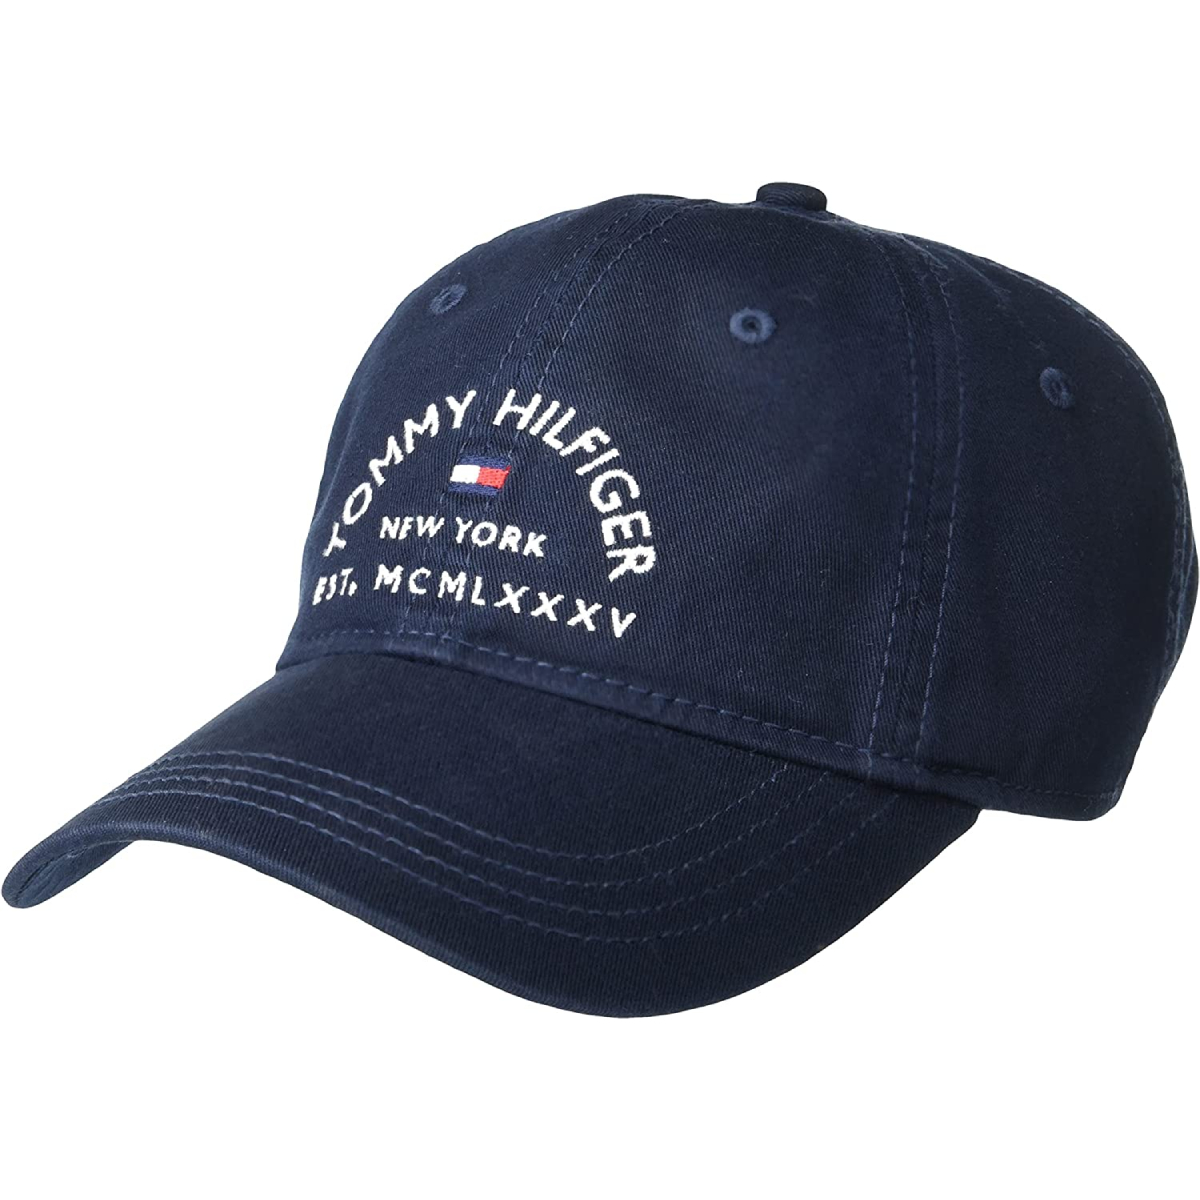 non-tommy-hilfiger-73